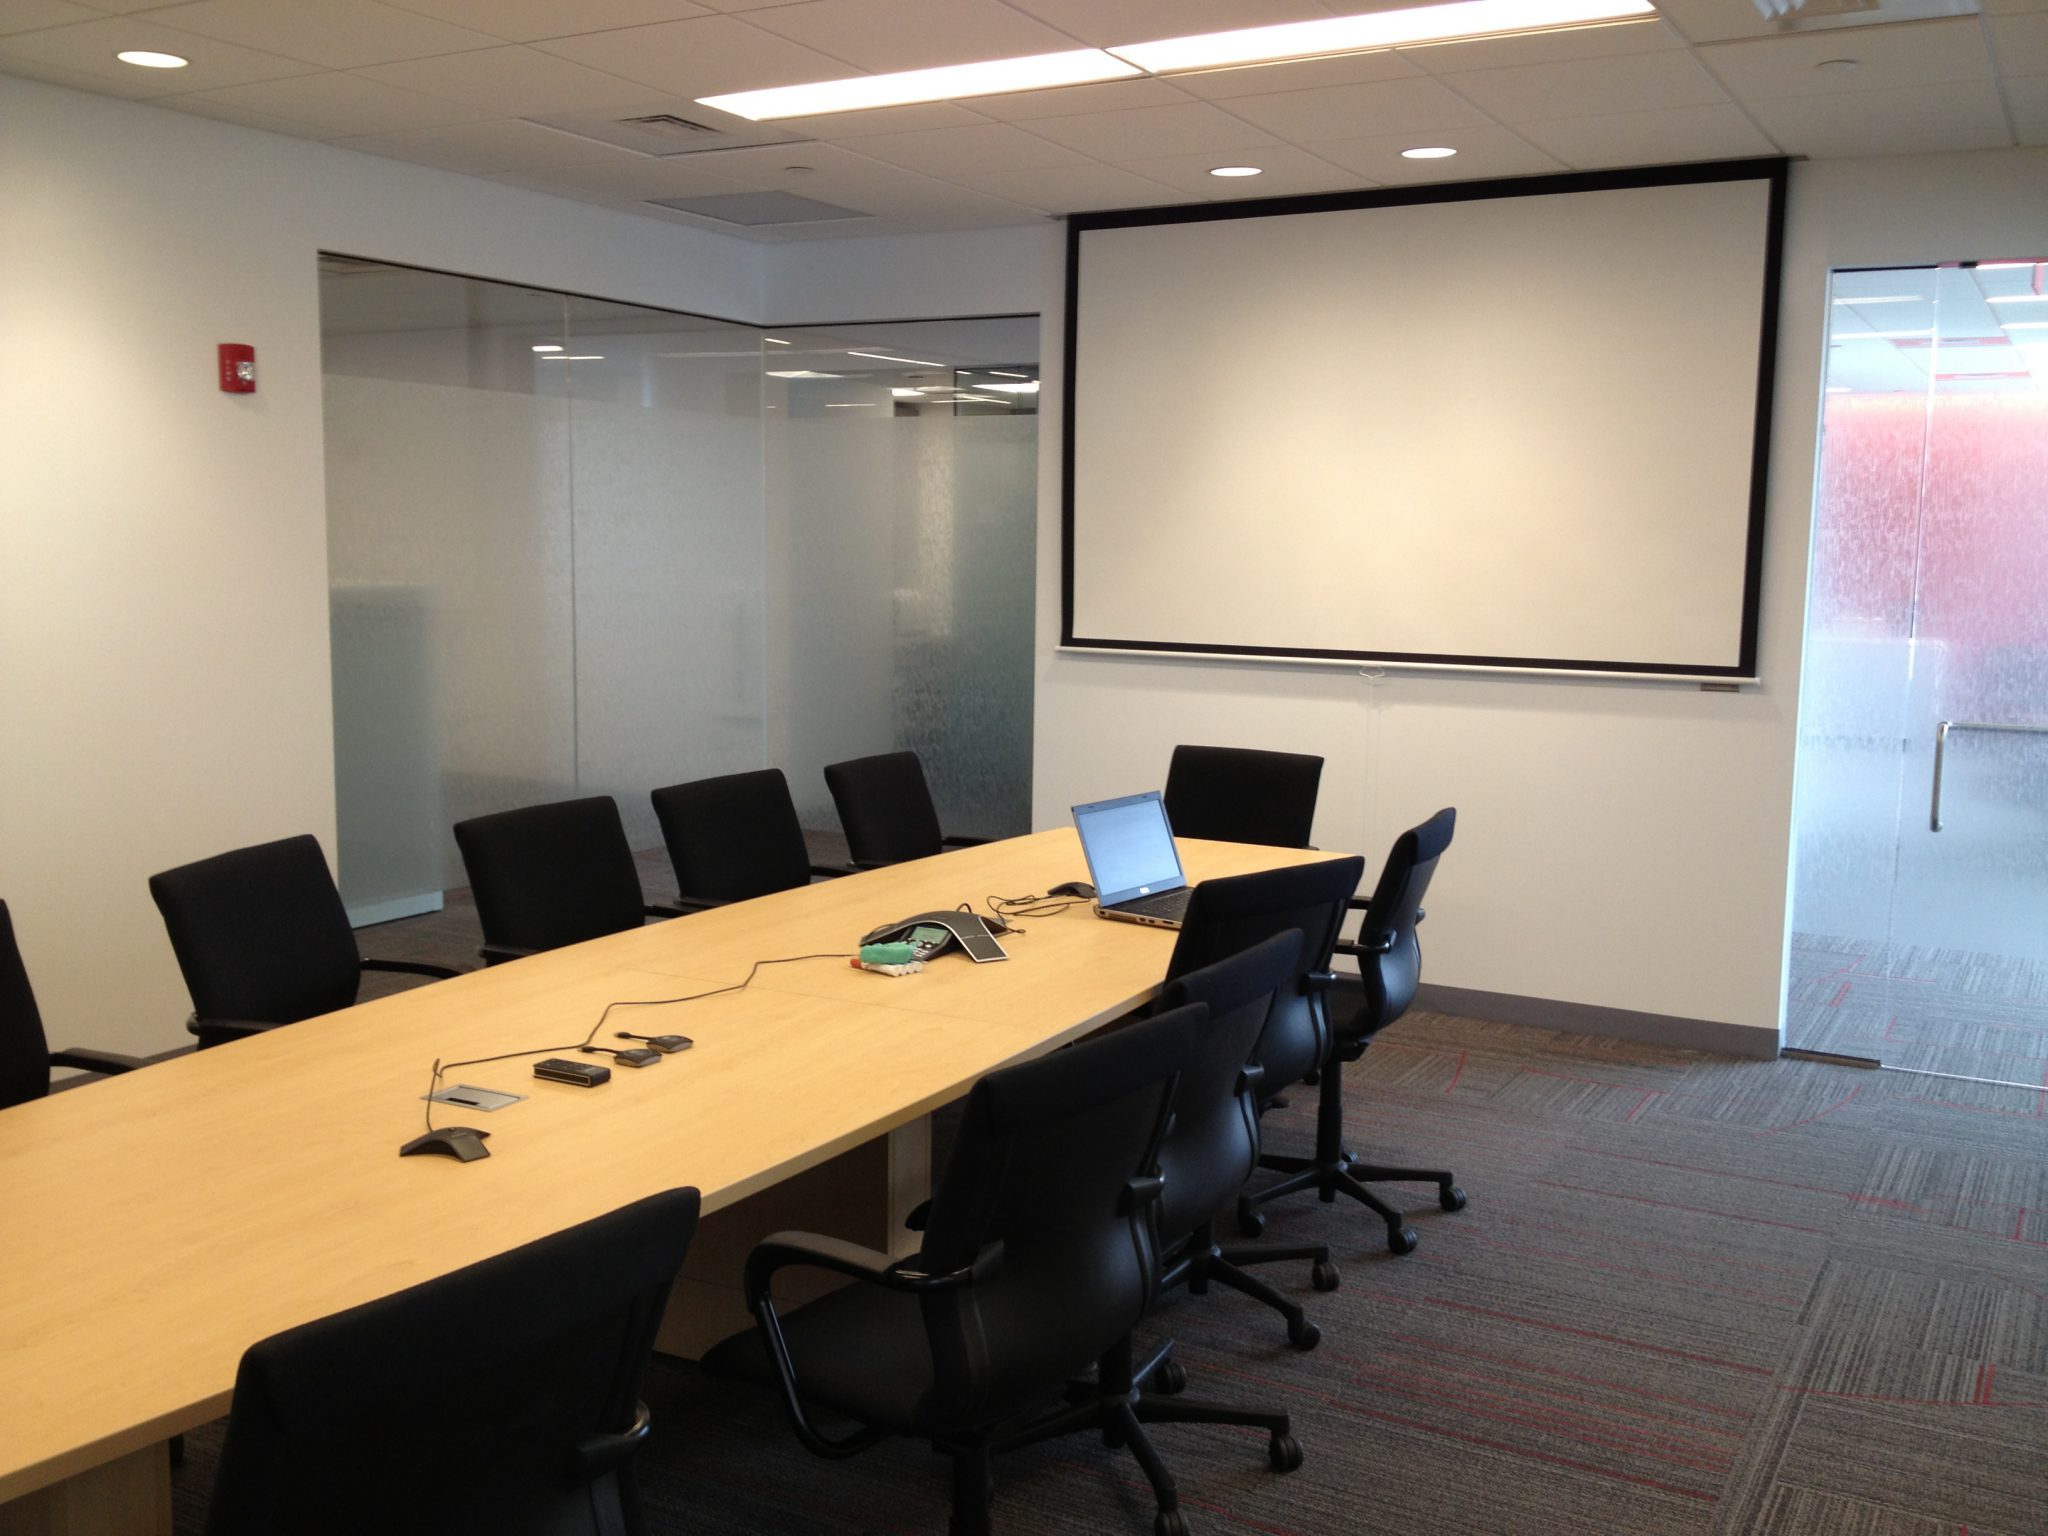 Conference Room Audio and Visual Equipment